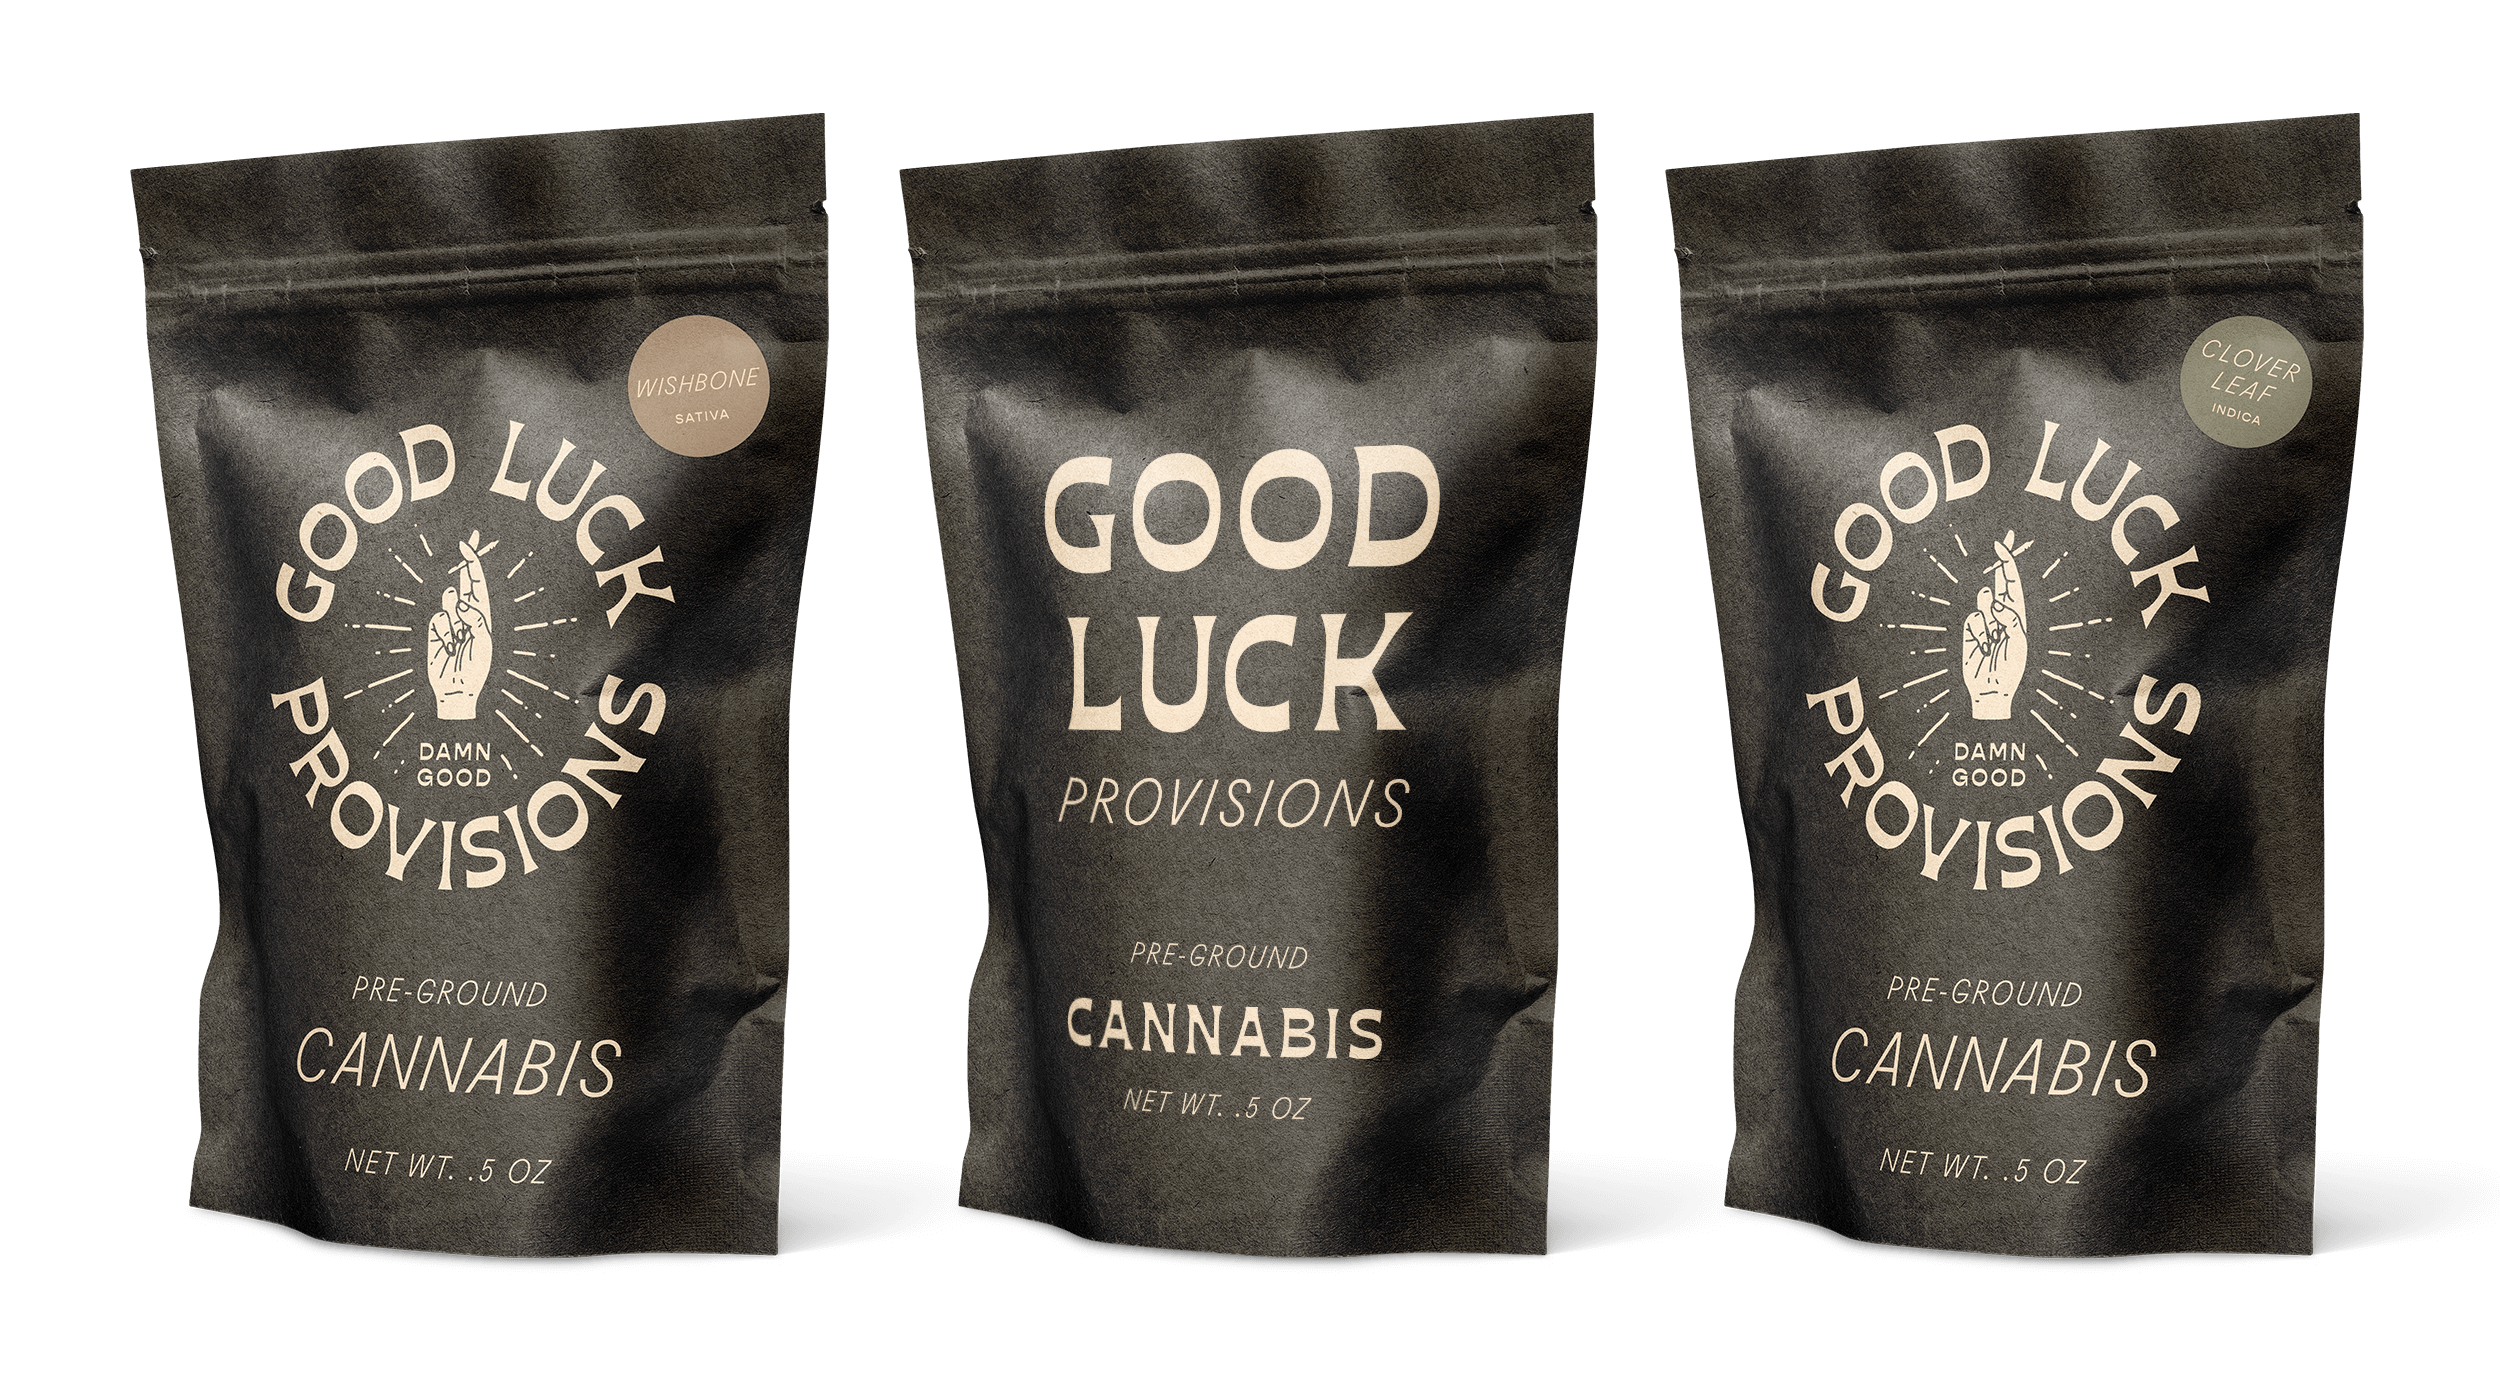 Packaging Bags for Good Luck Provisions